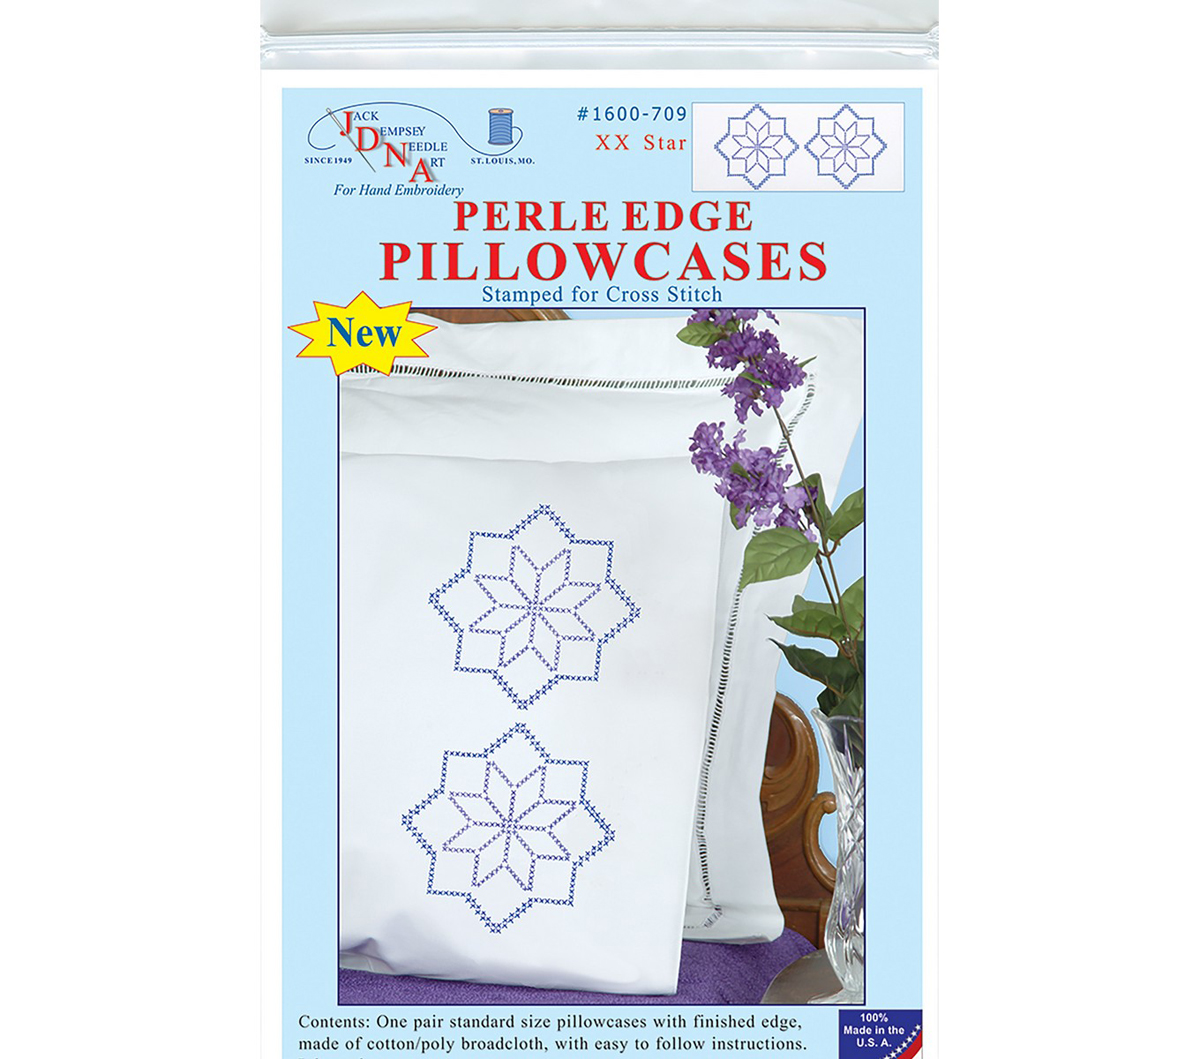 Jack Dempsey Stamped Pillowcases W/White Perle Edge 2/Pkg-XX Star